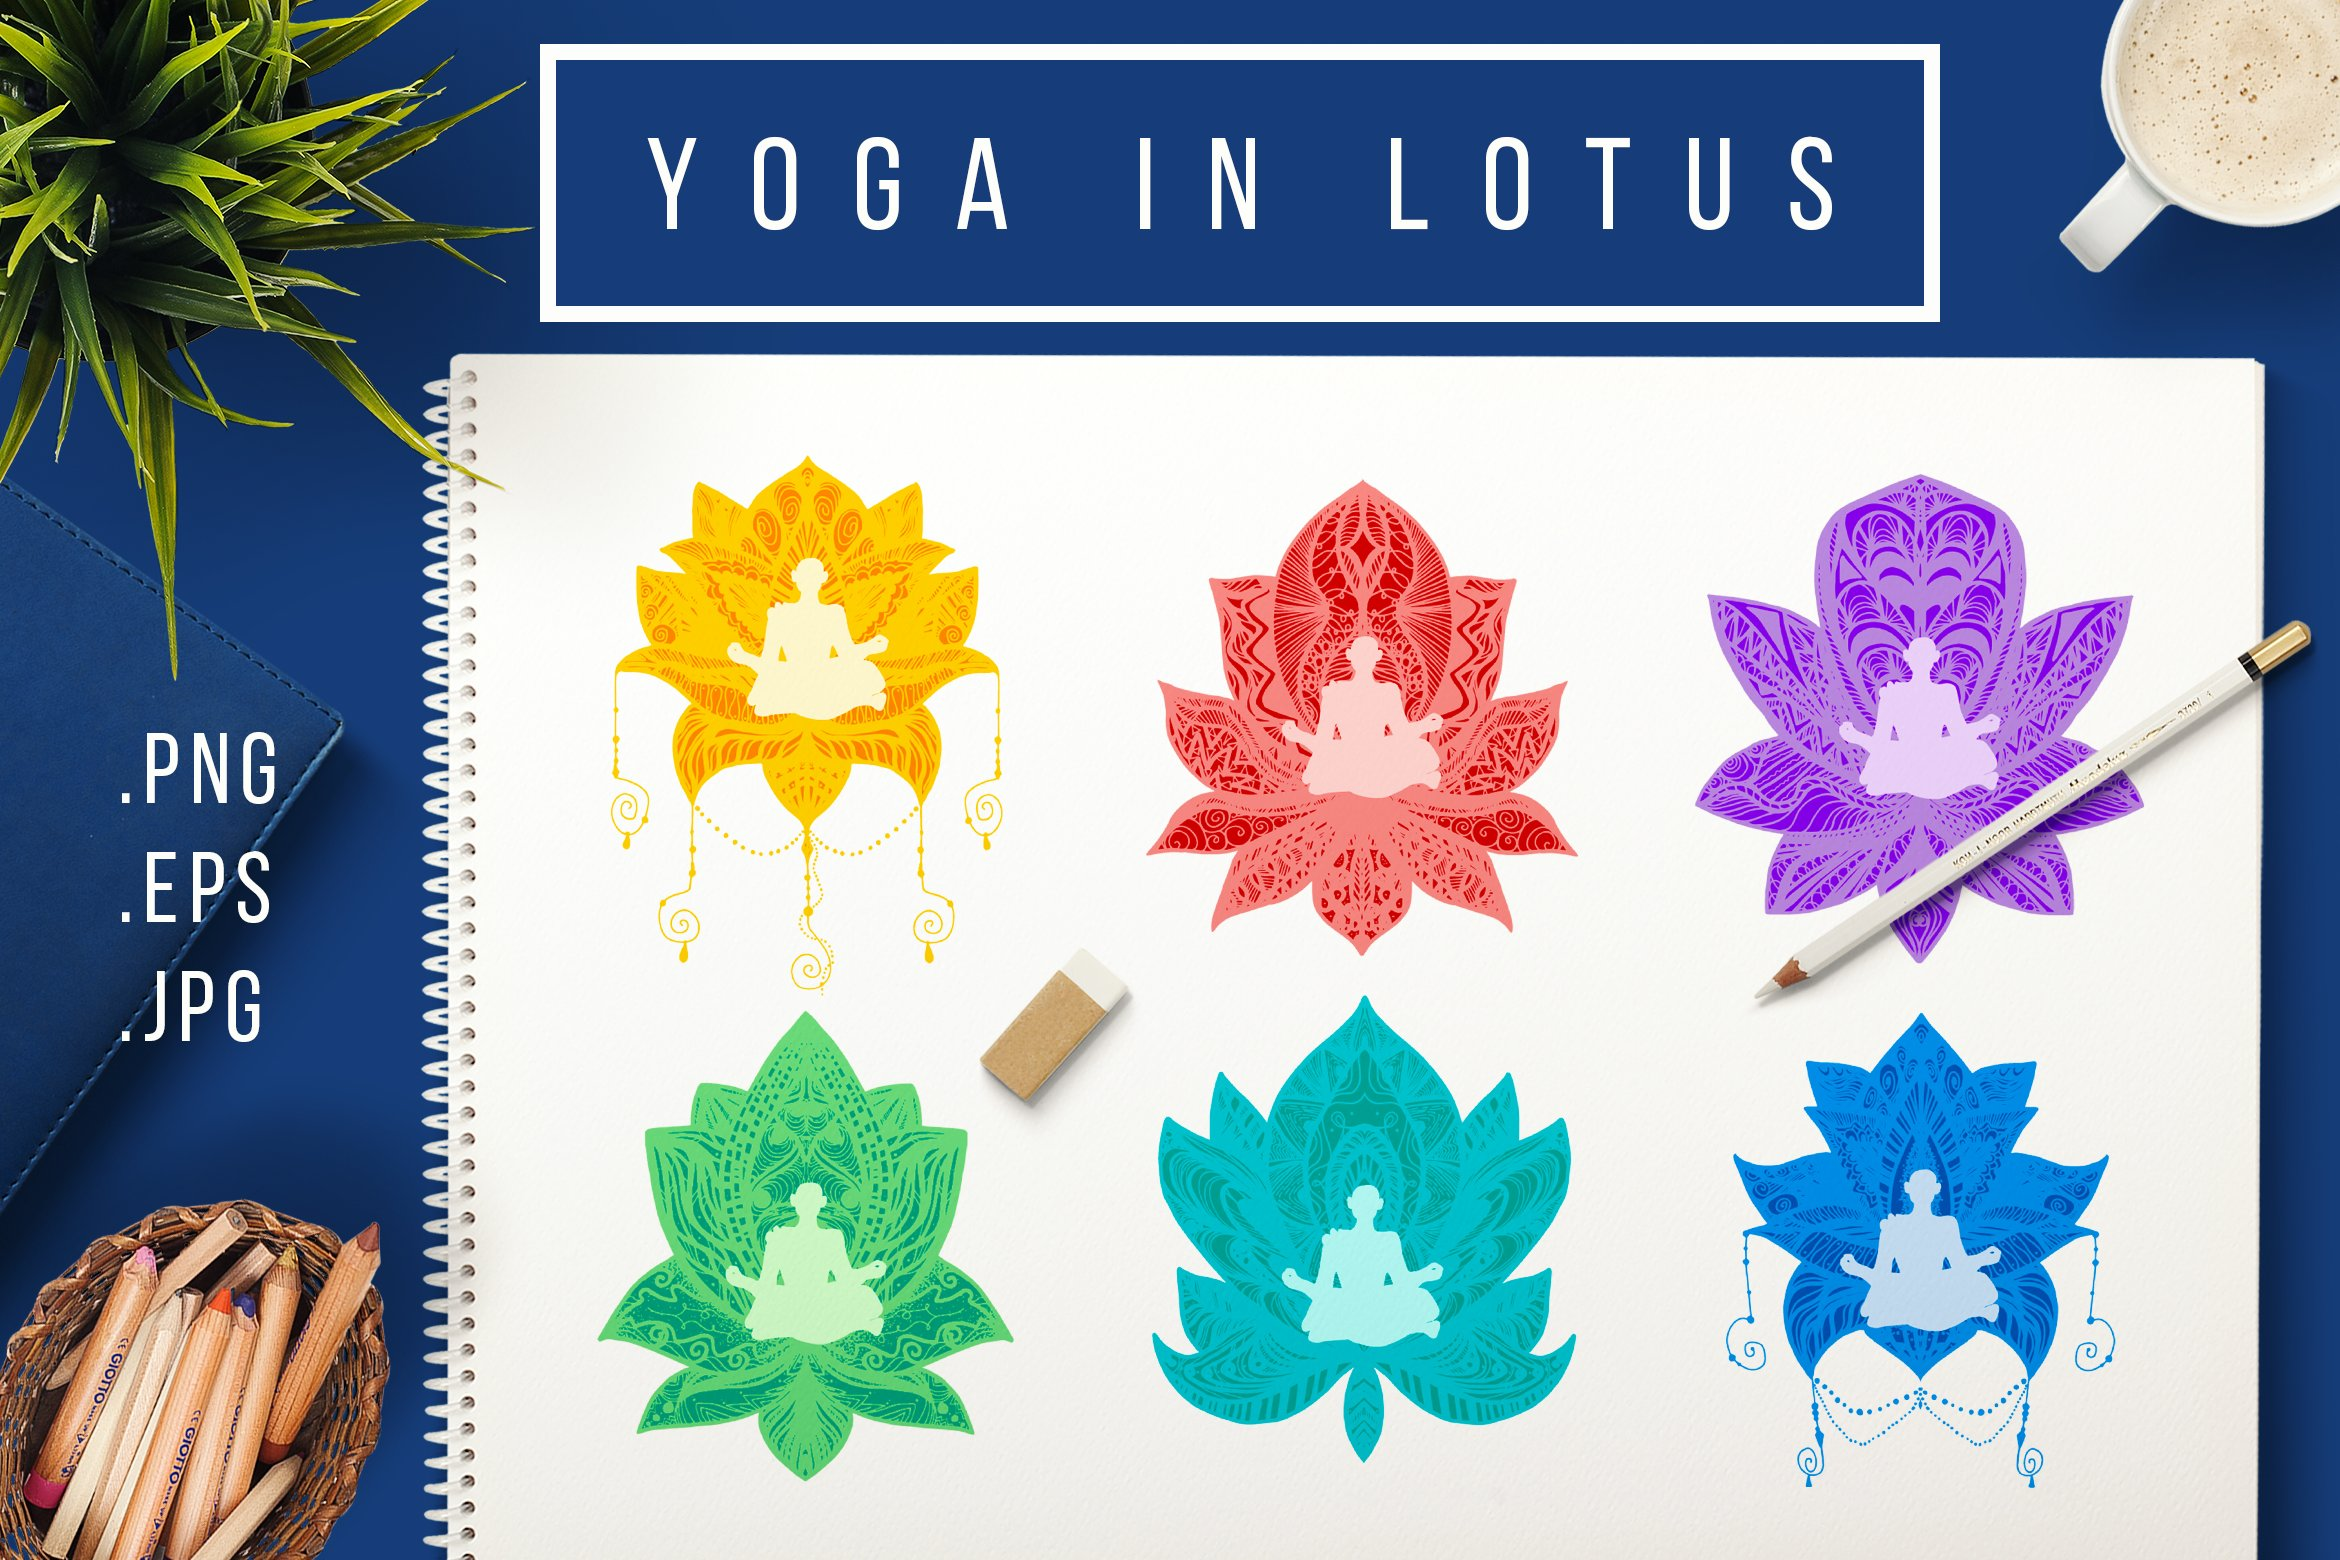 Download Free Yoga In Lotus Graphic By Barsrsind Creative Fabrica for Cricut Explore, Silhouette and other cutting machines.